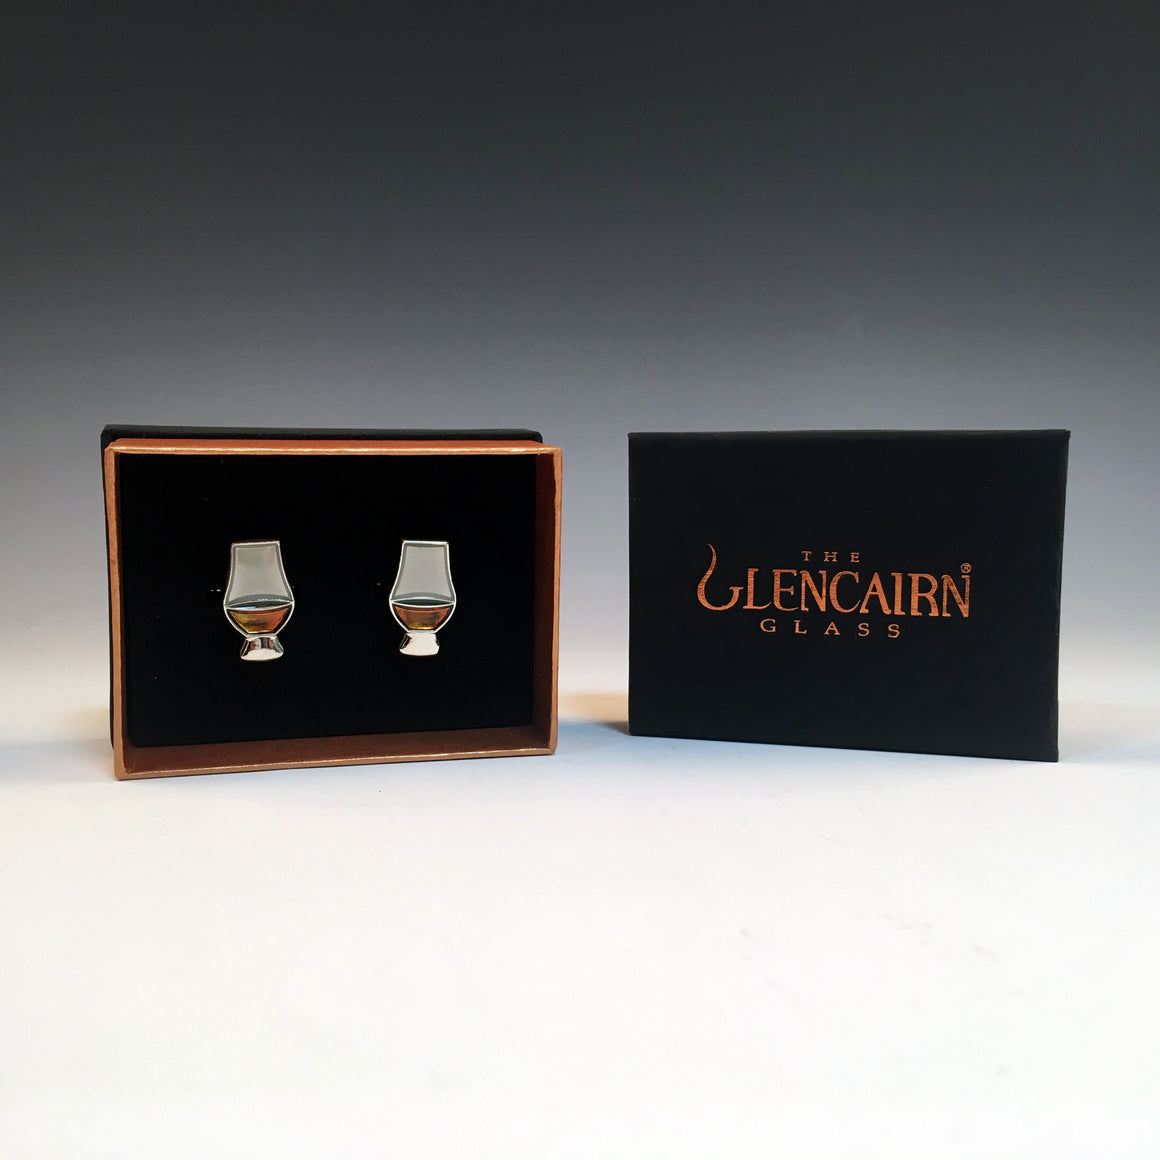 Glencairn Glass Cufflinks by Glencairn